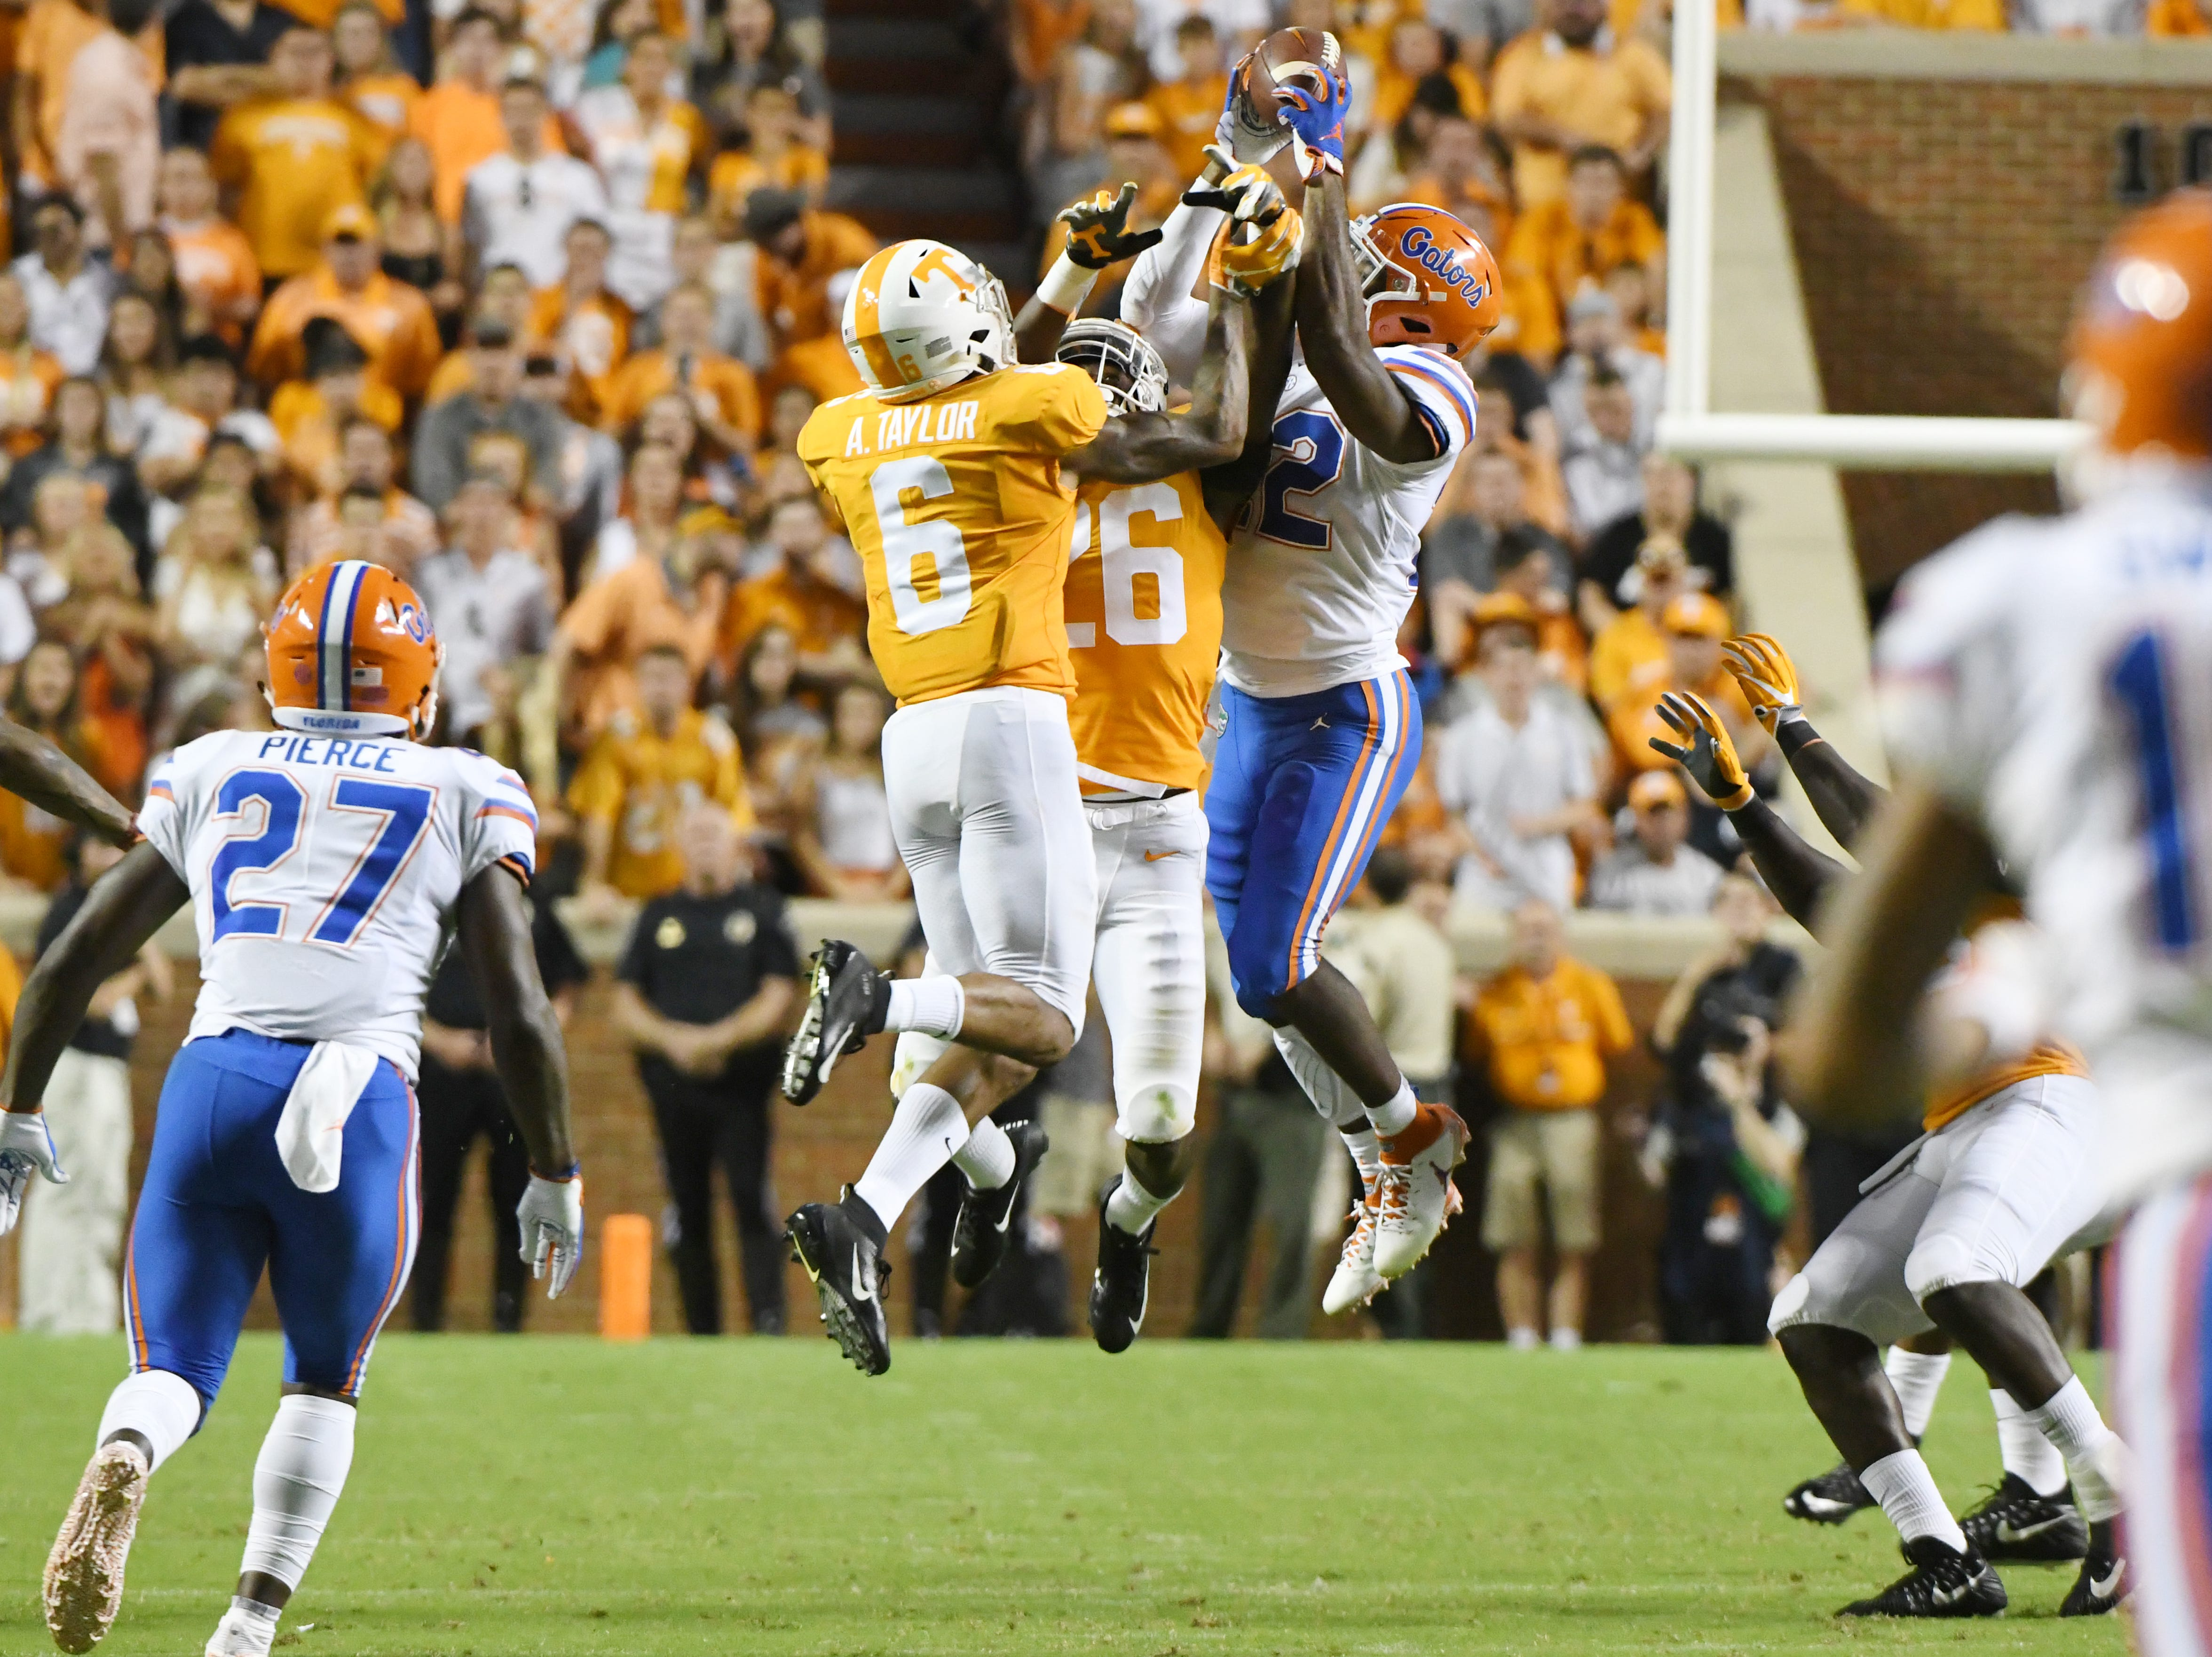 Tennessee defensive back/wide receiver Alontae Taylor (6) Tennessee wide receiver Jay Shoop (26) and Florida running back Lamical Perine (22) go for a pass during a game between Tennessee and Florida at Neyland Stadium in Knoxville, Tennessee on Saturday, September 22, 2018.